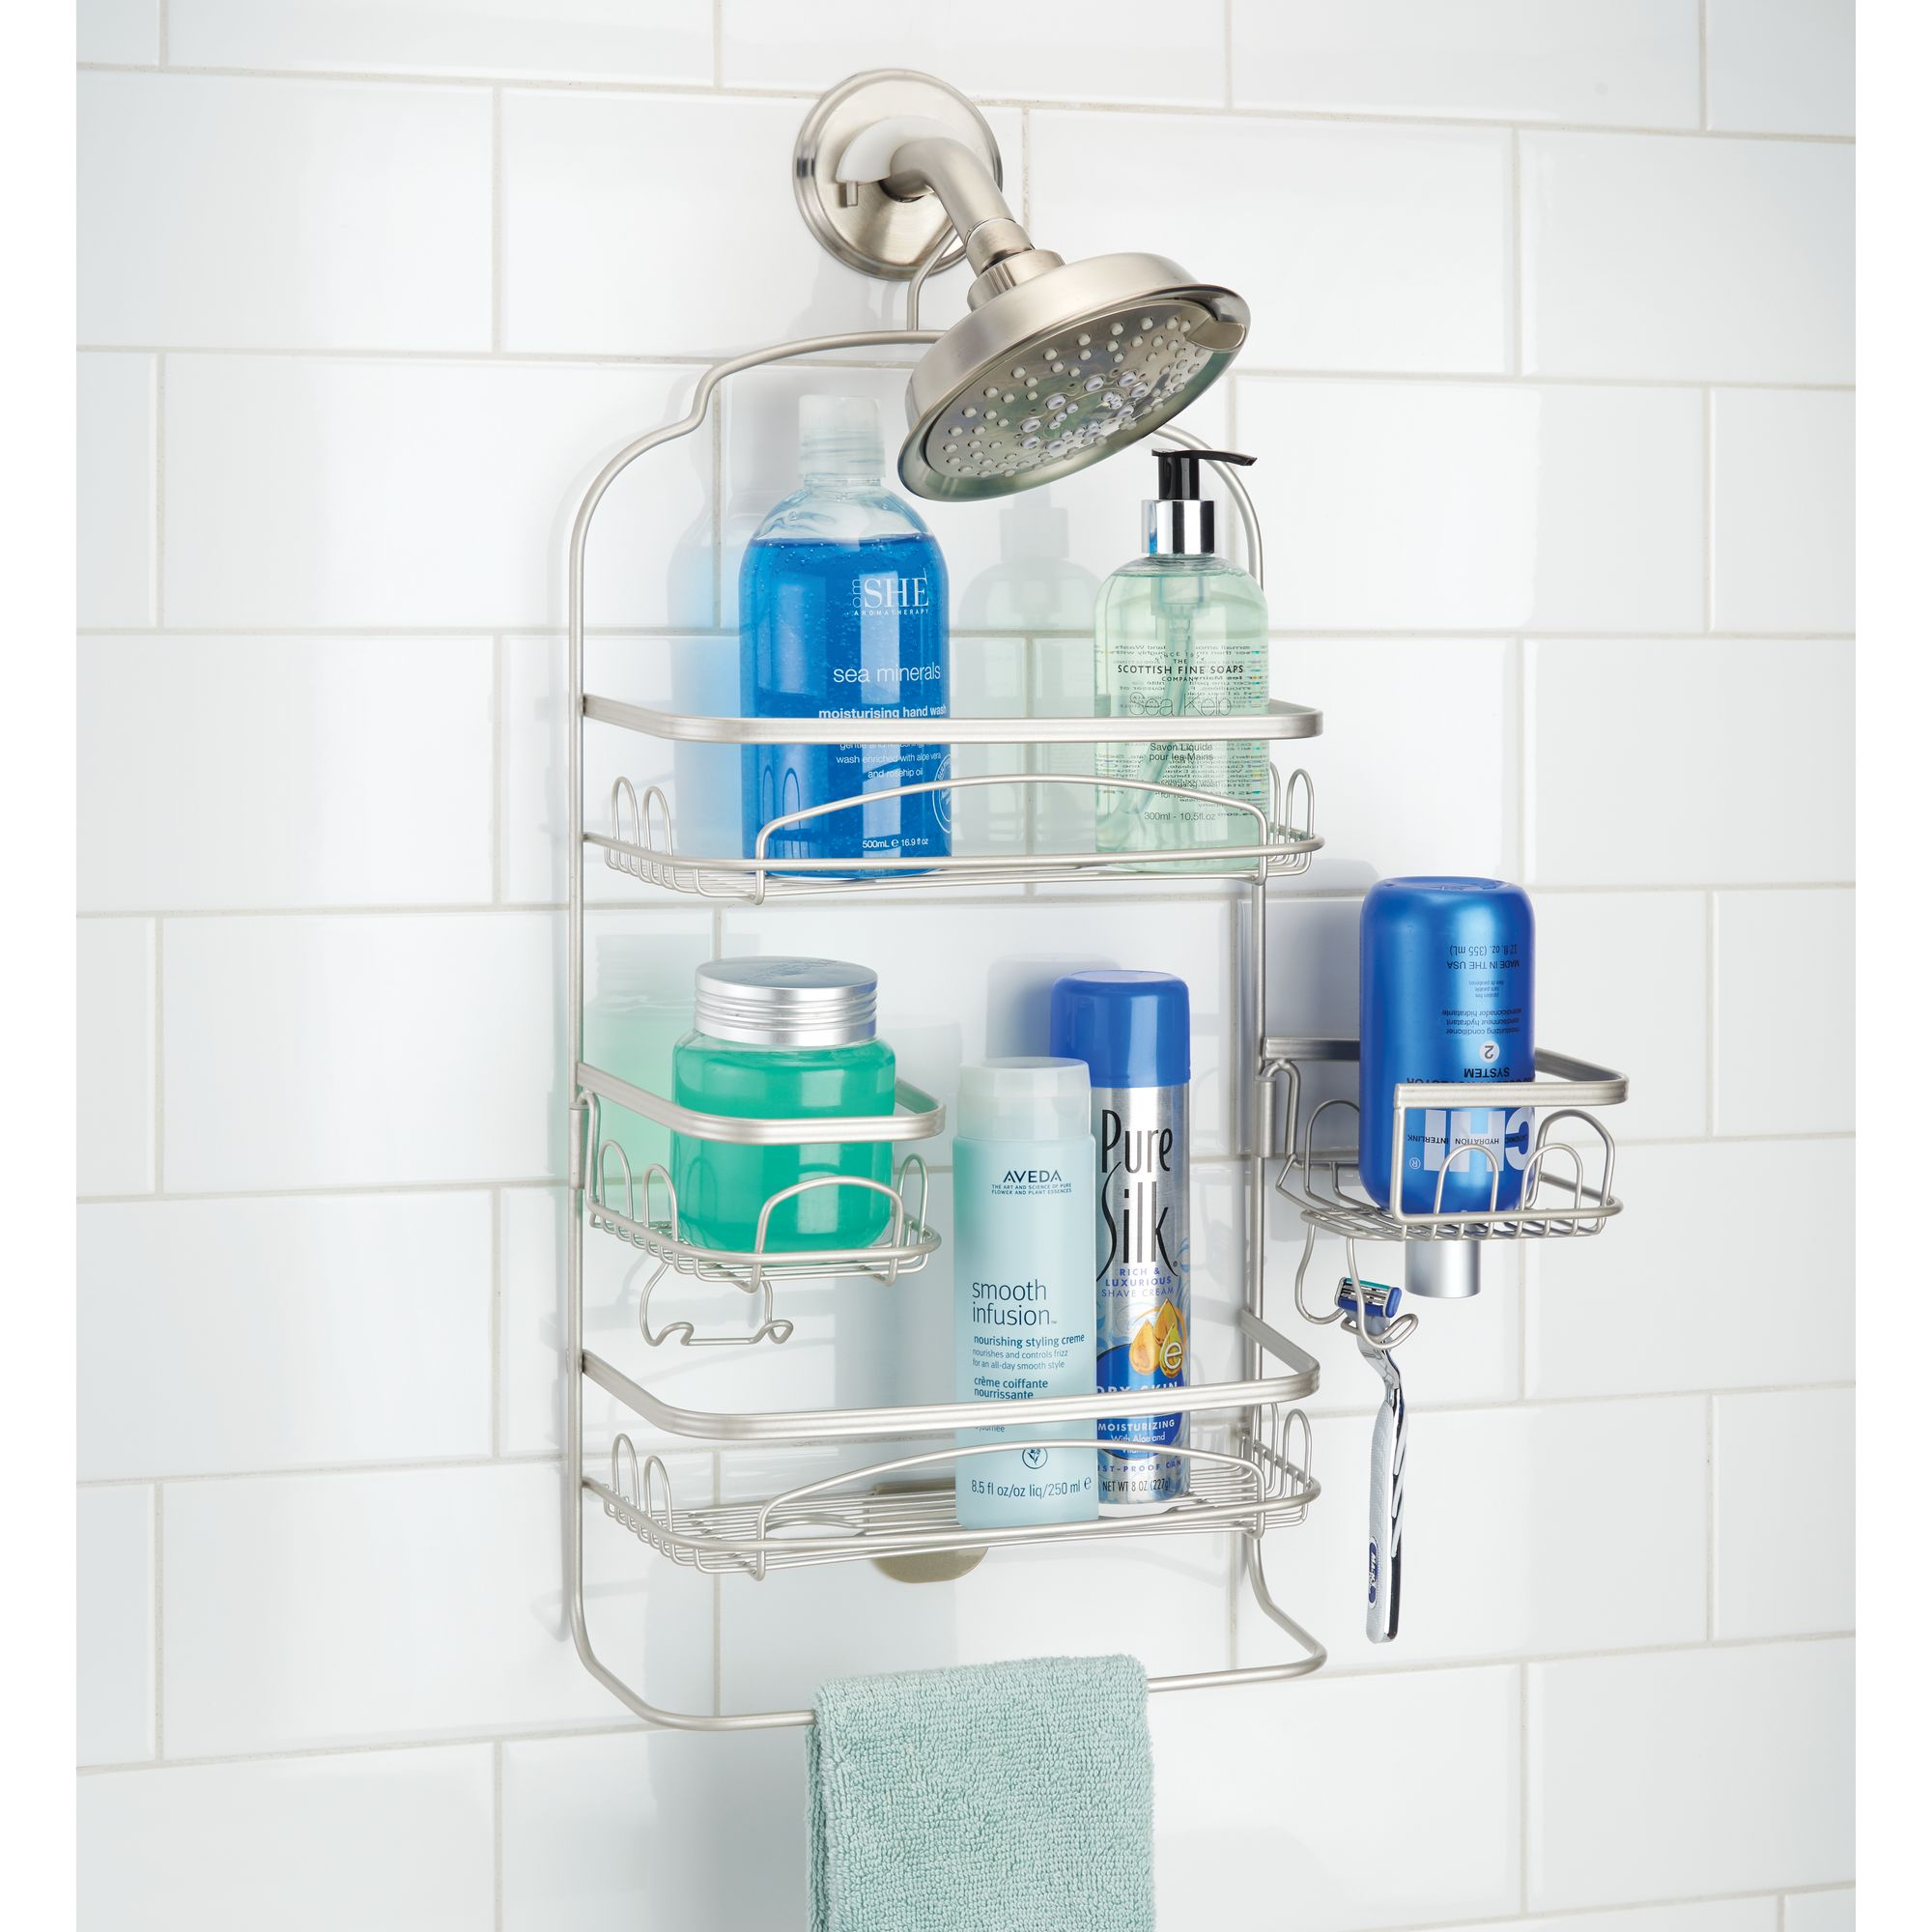 Better Homes & Gardens Satin Swivel Shower Caddy - Walmart.com